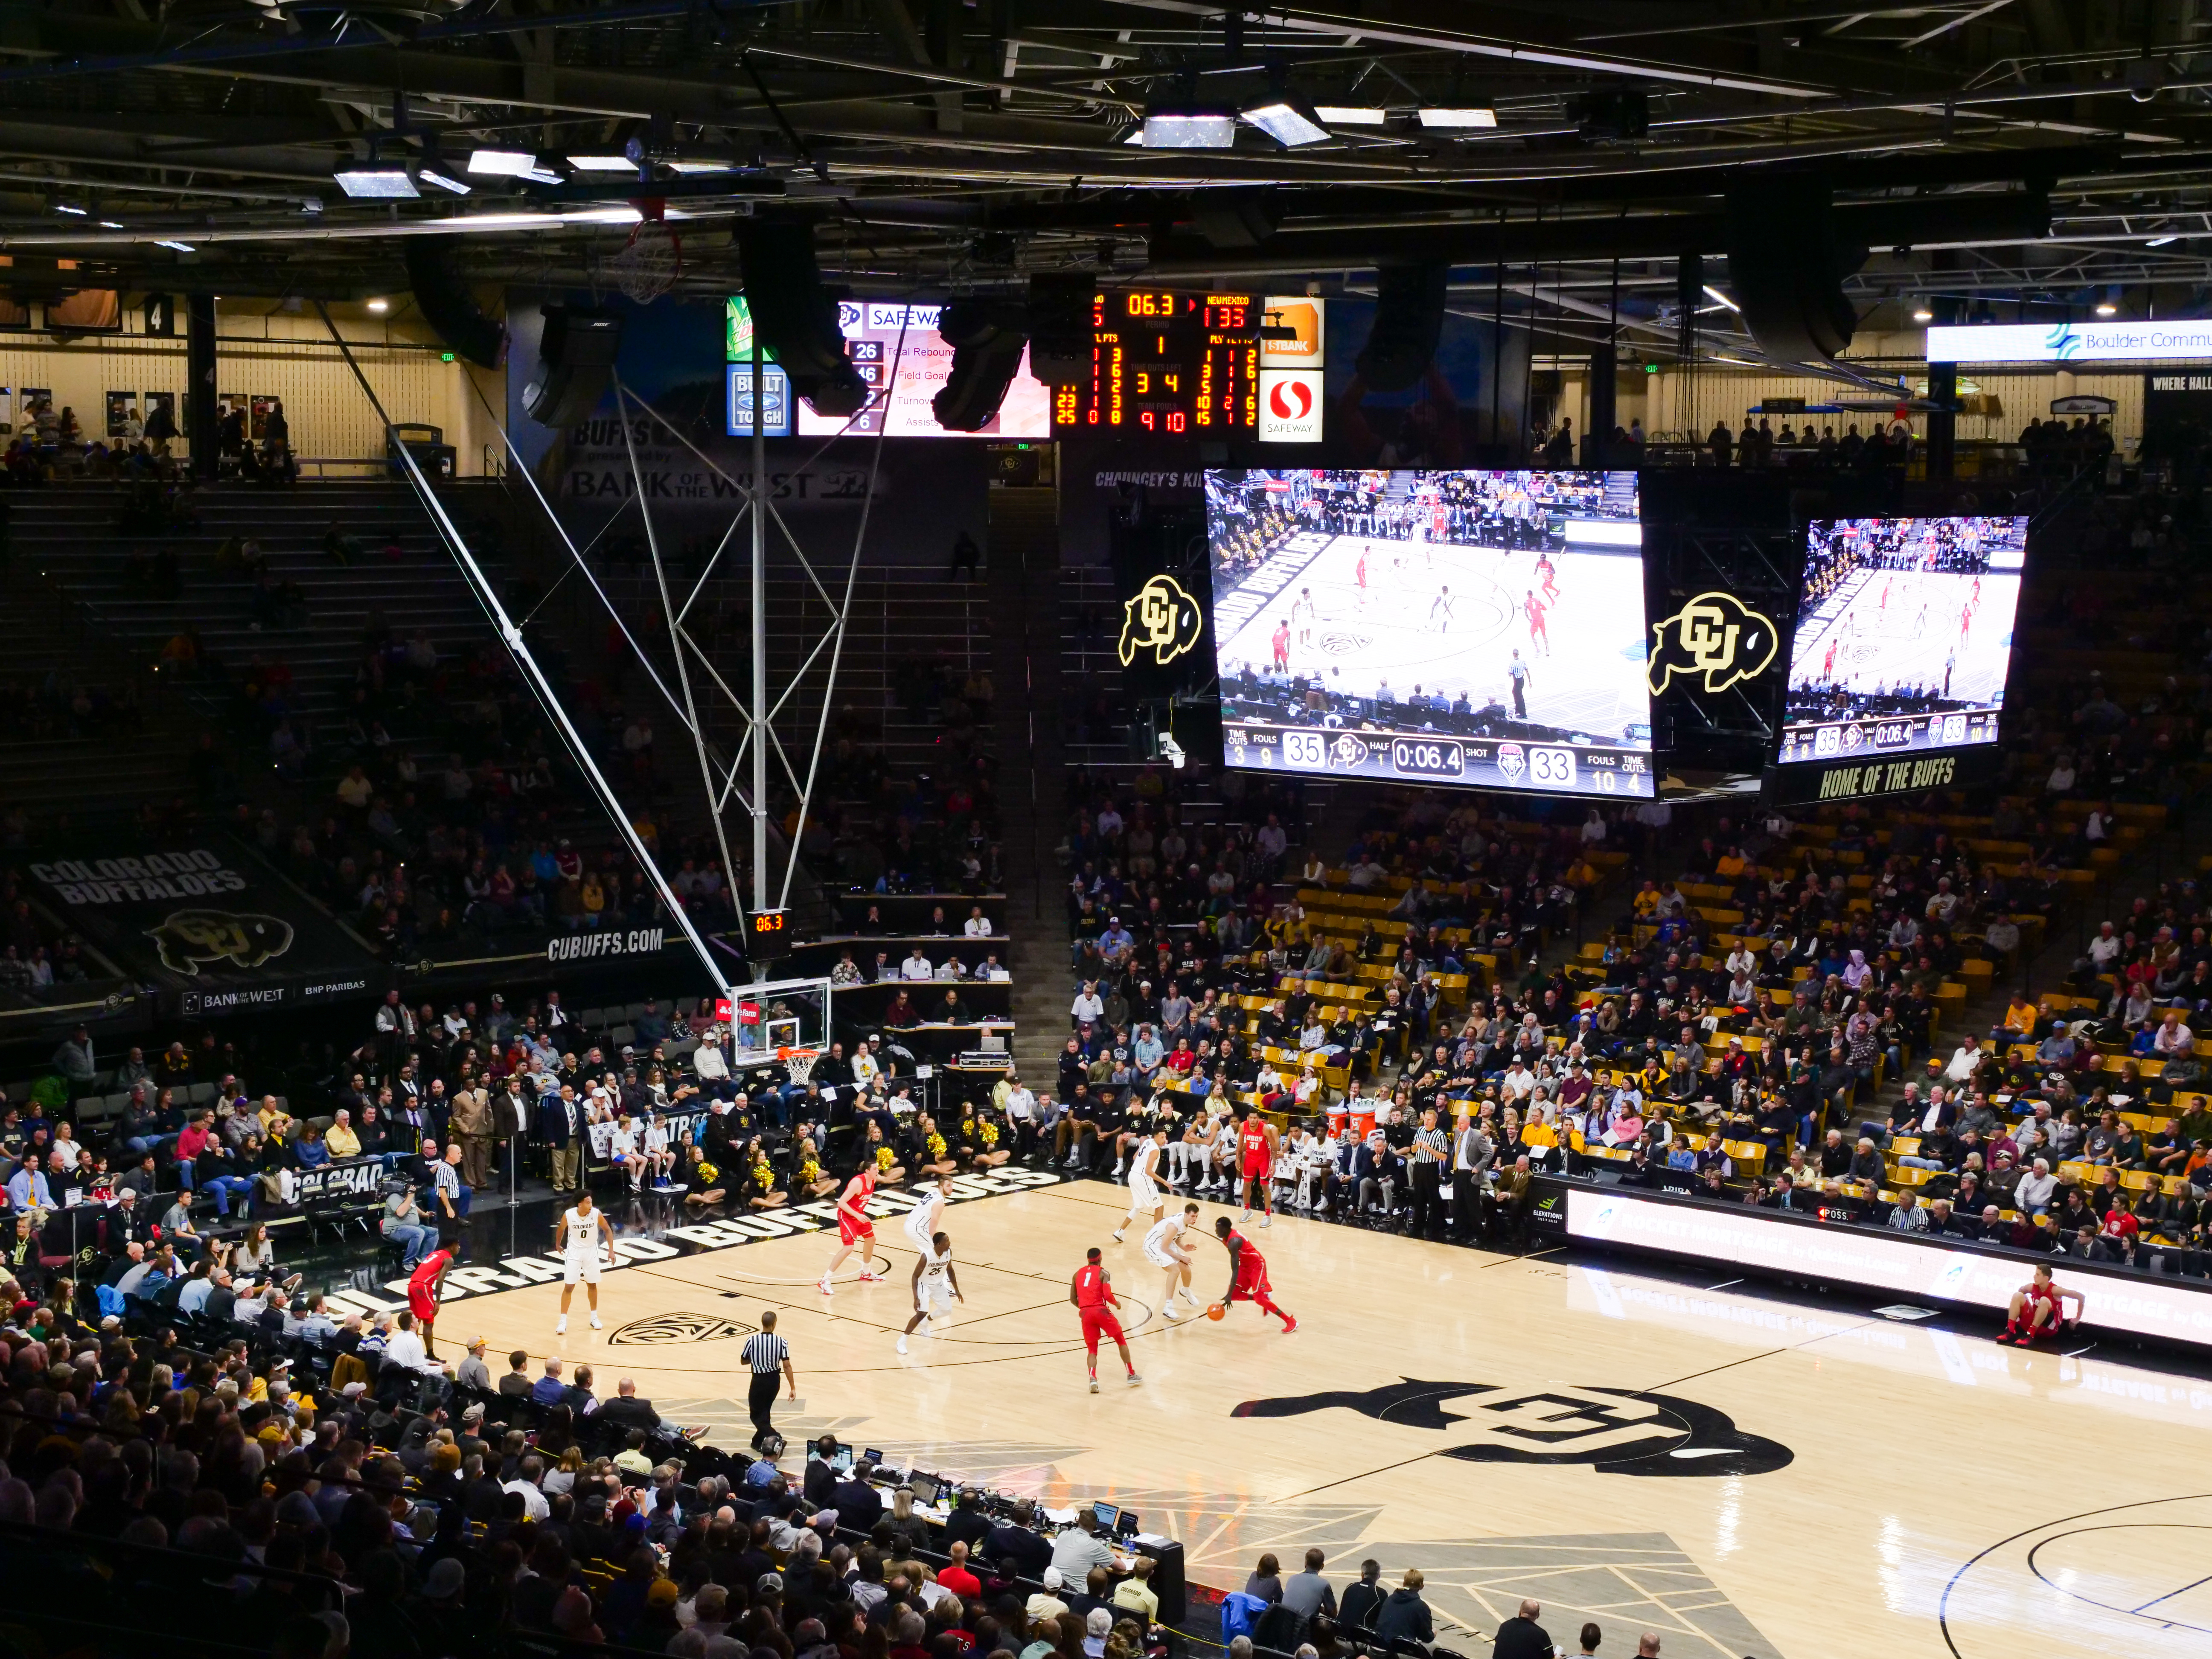 CU men's basketball game at the CU Events Center